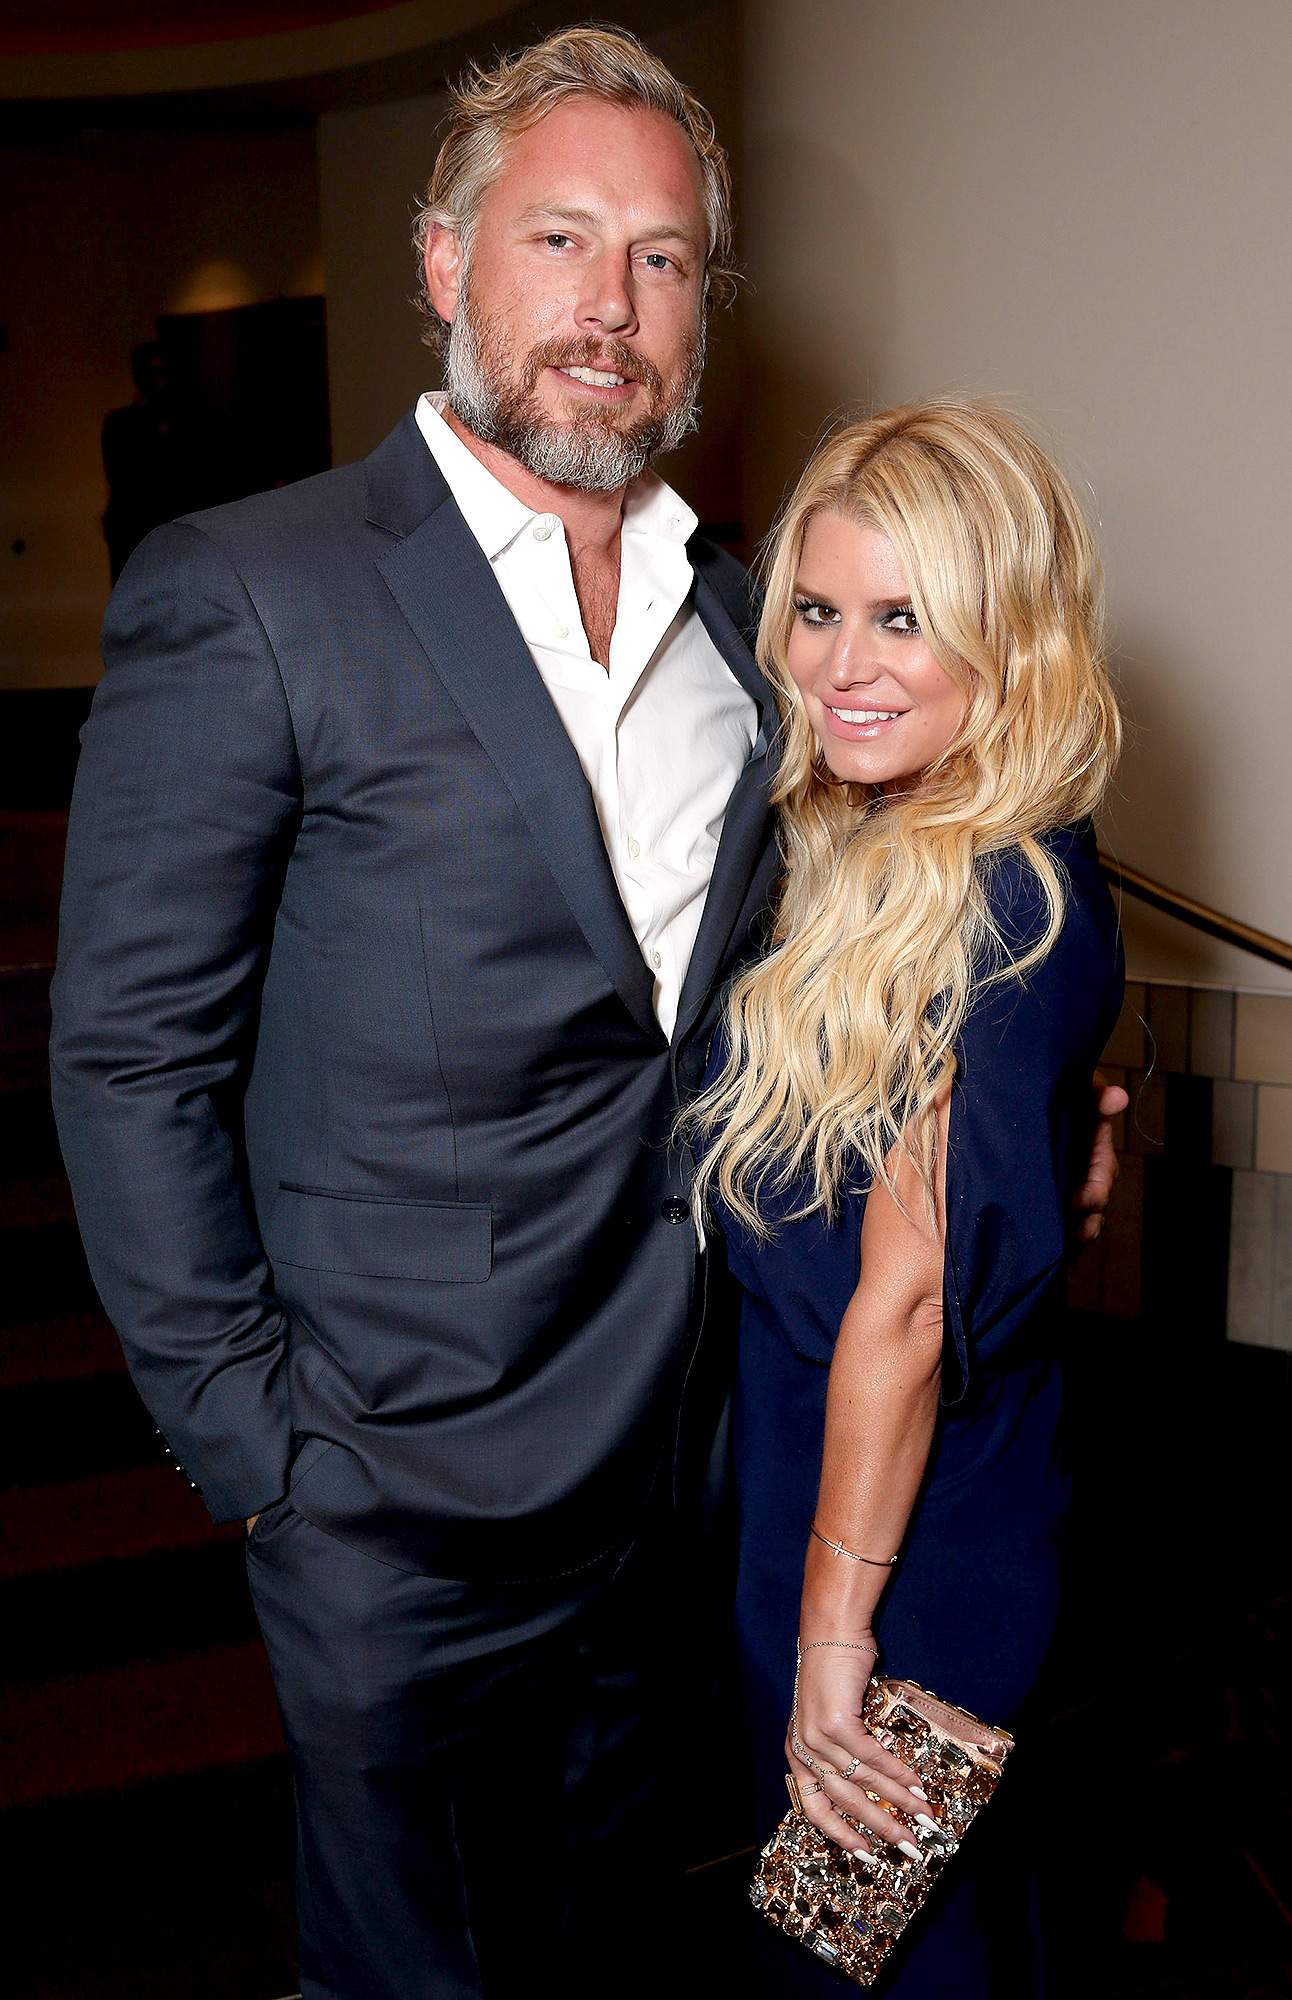 She's Here! Jessica Simpson and Husband Eric Johnson Welcome Daughter Birdie Mae